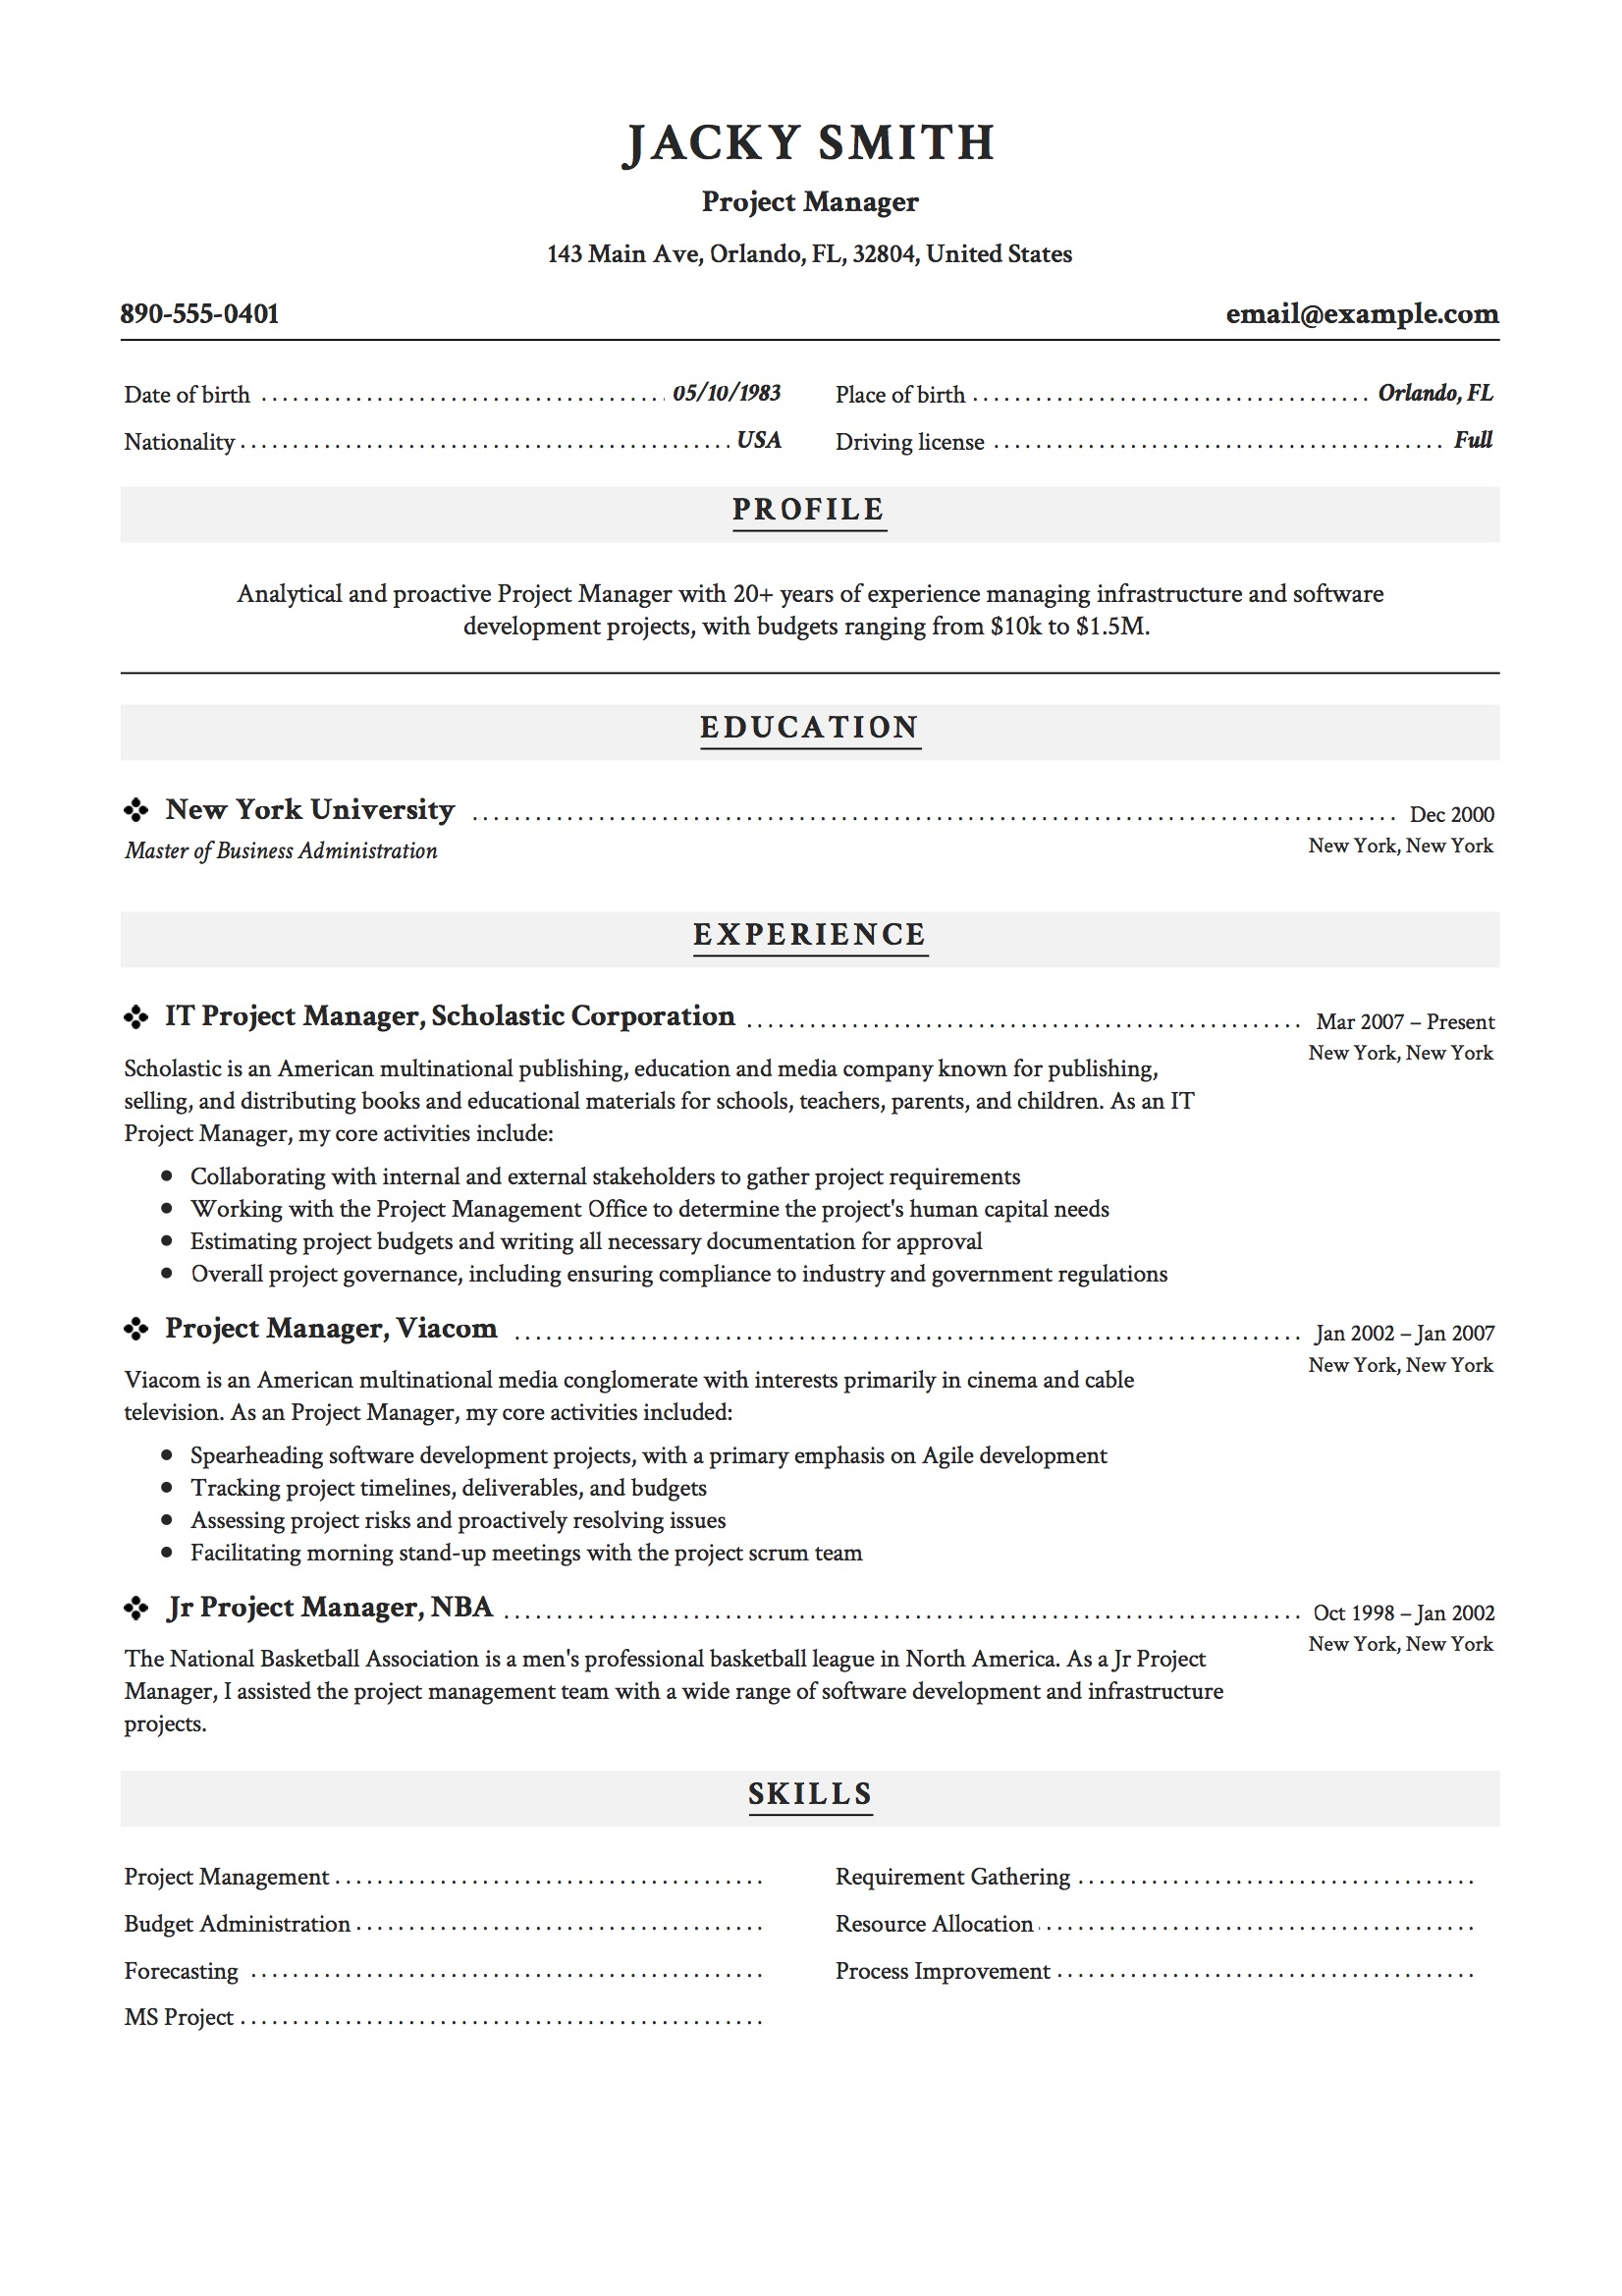 Project Manager Resume Sample  Project Manager Resume Samples